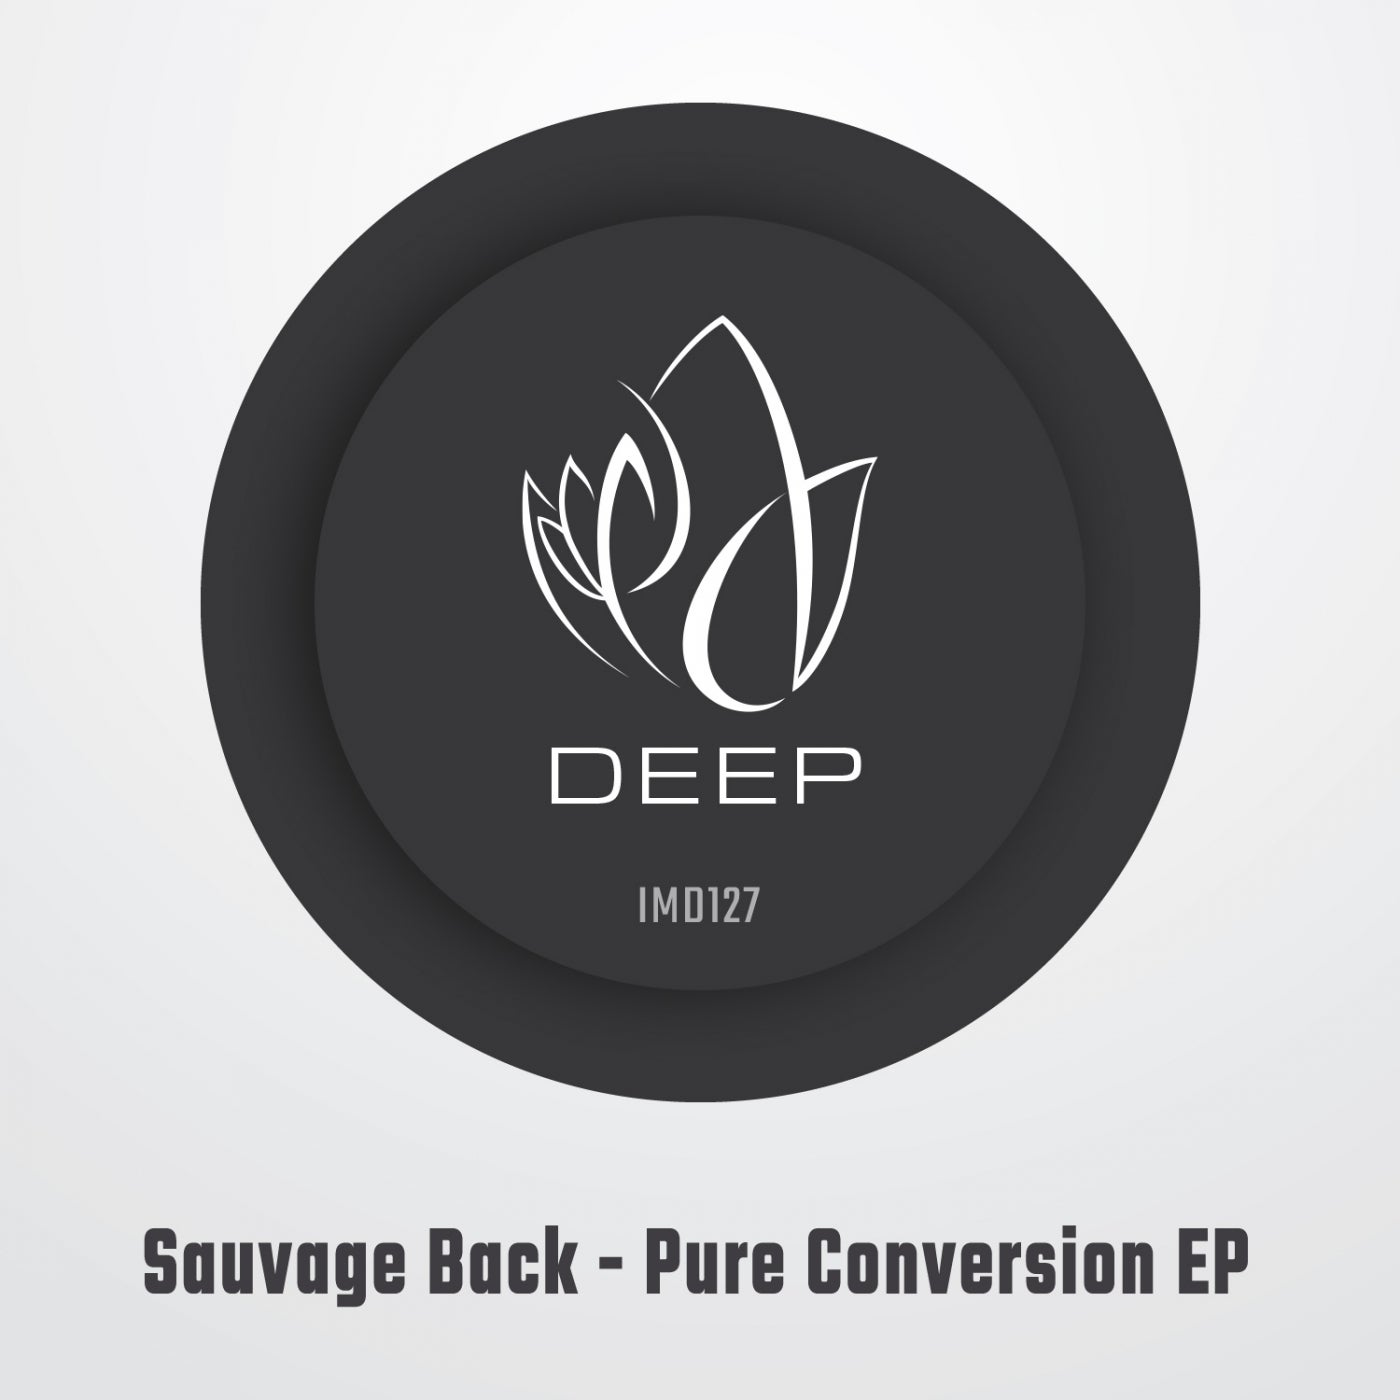 Sauvage back - Pure Conversion (2021)